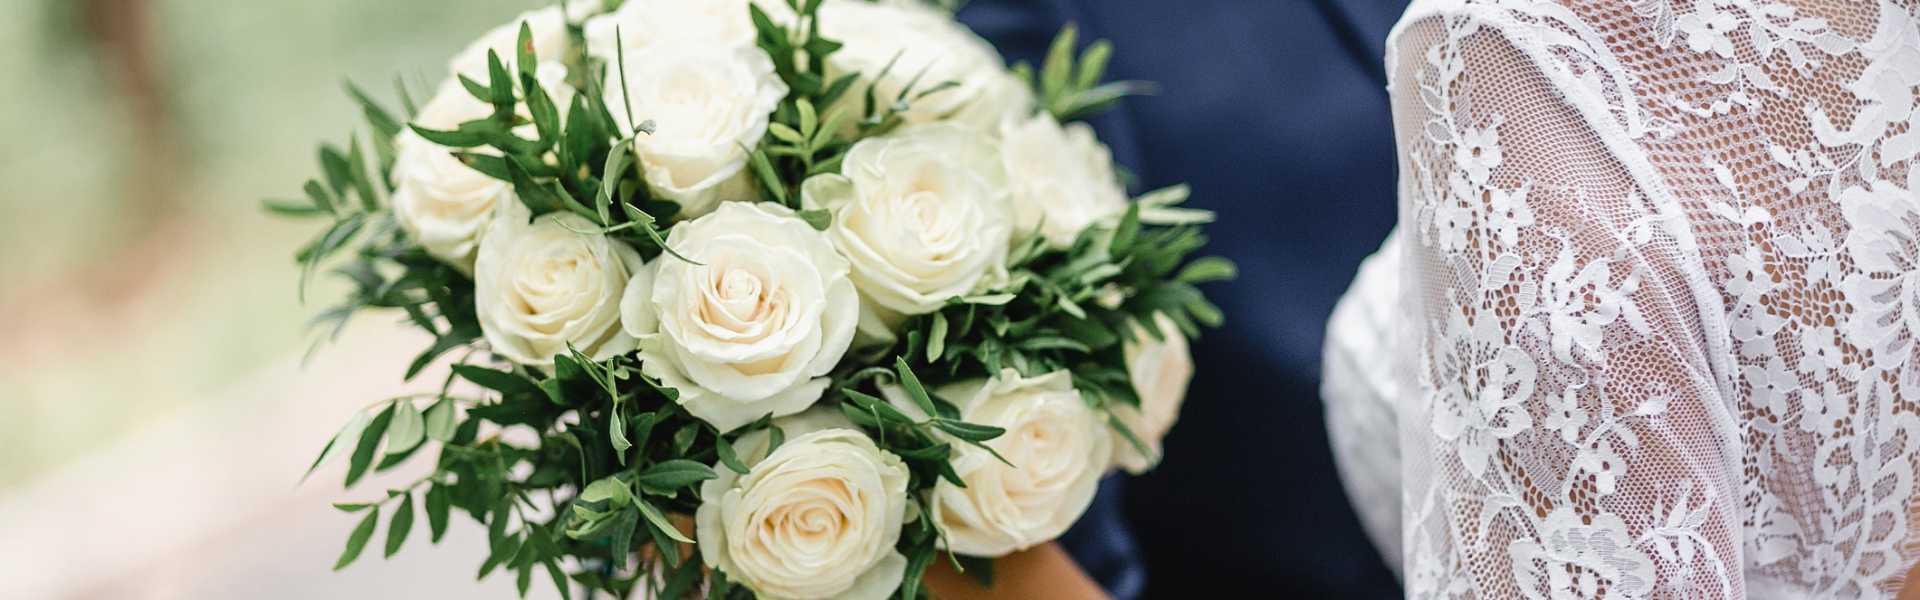 close up of wedding bouquet with bride and groom embracing